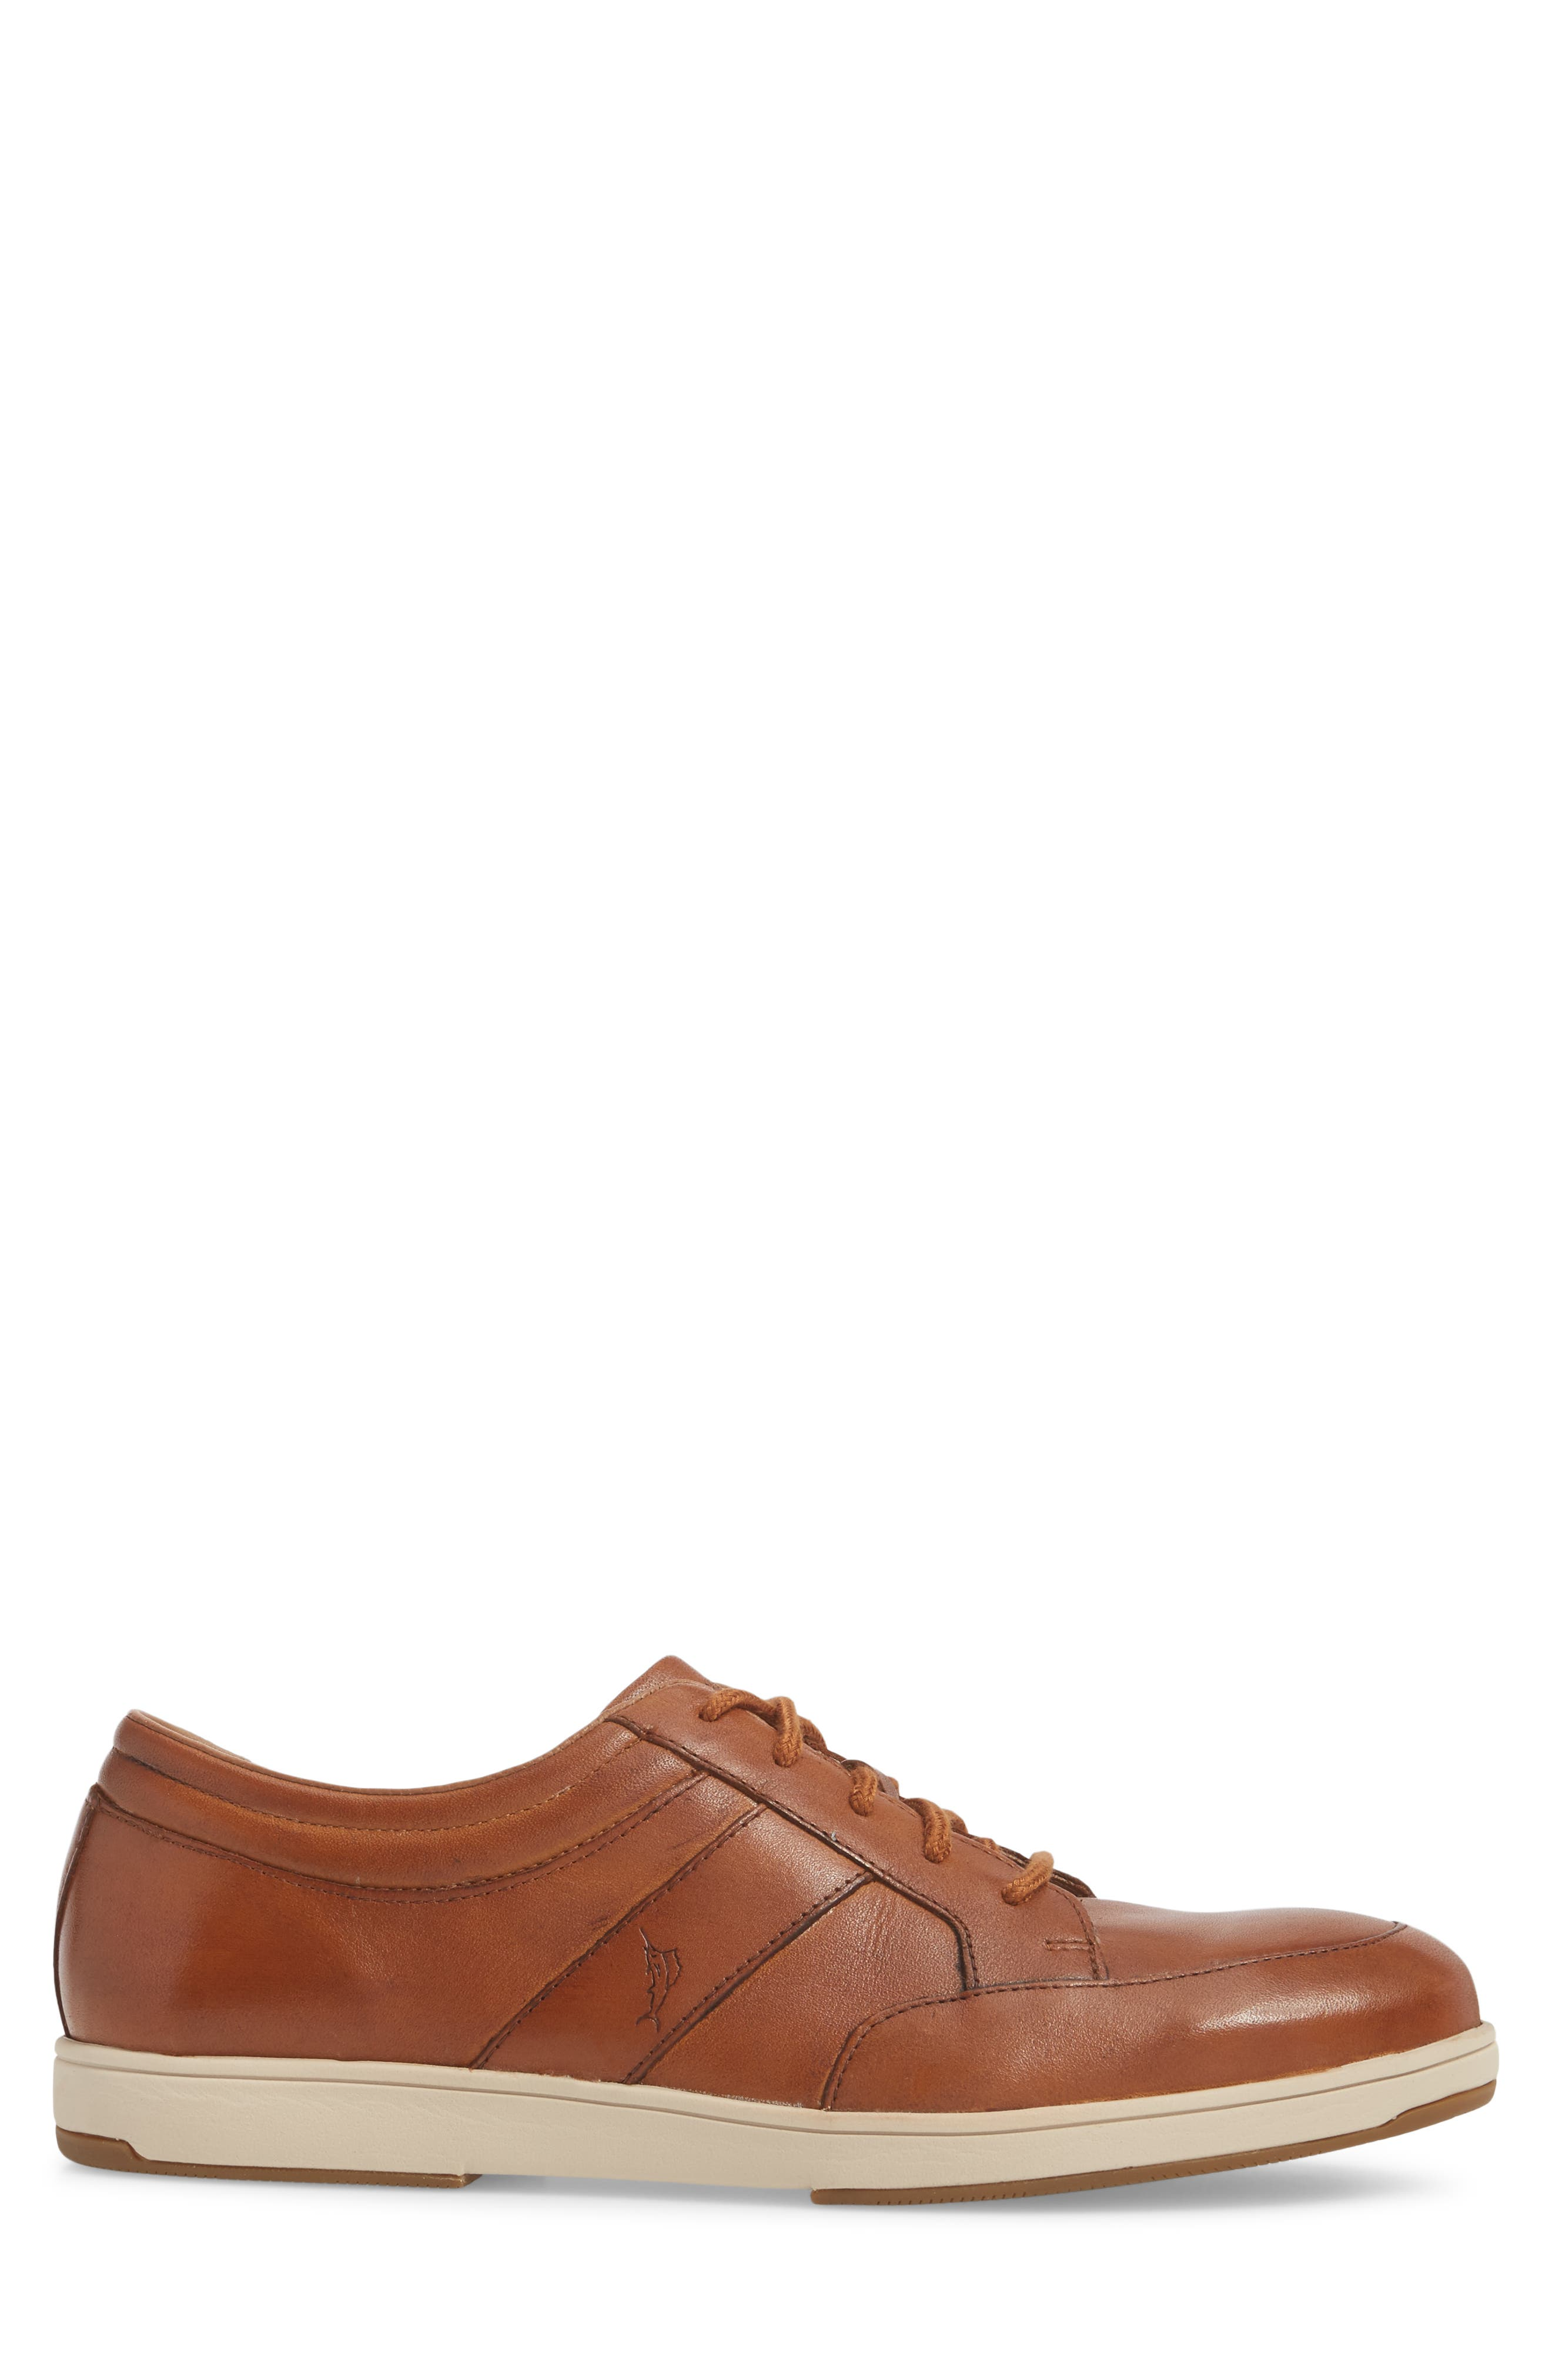 Caicos Authentic Low Top Sneaker,                             Alternate thumbnail 3, color,                             TAN LEATHER